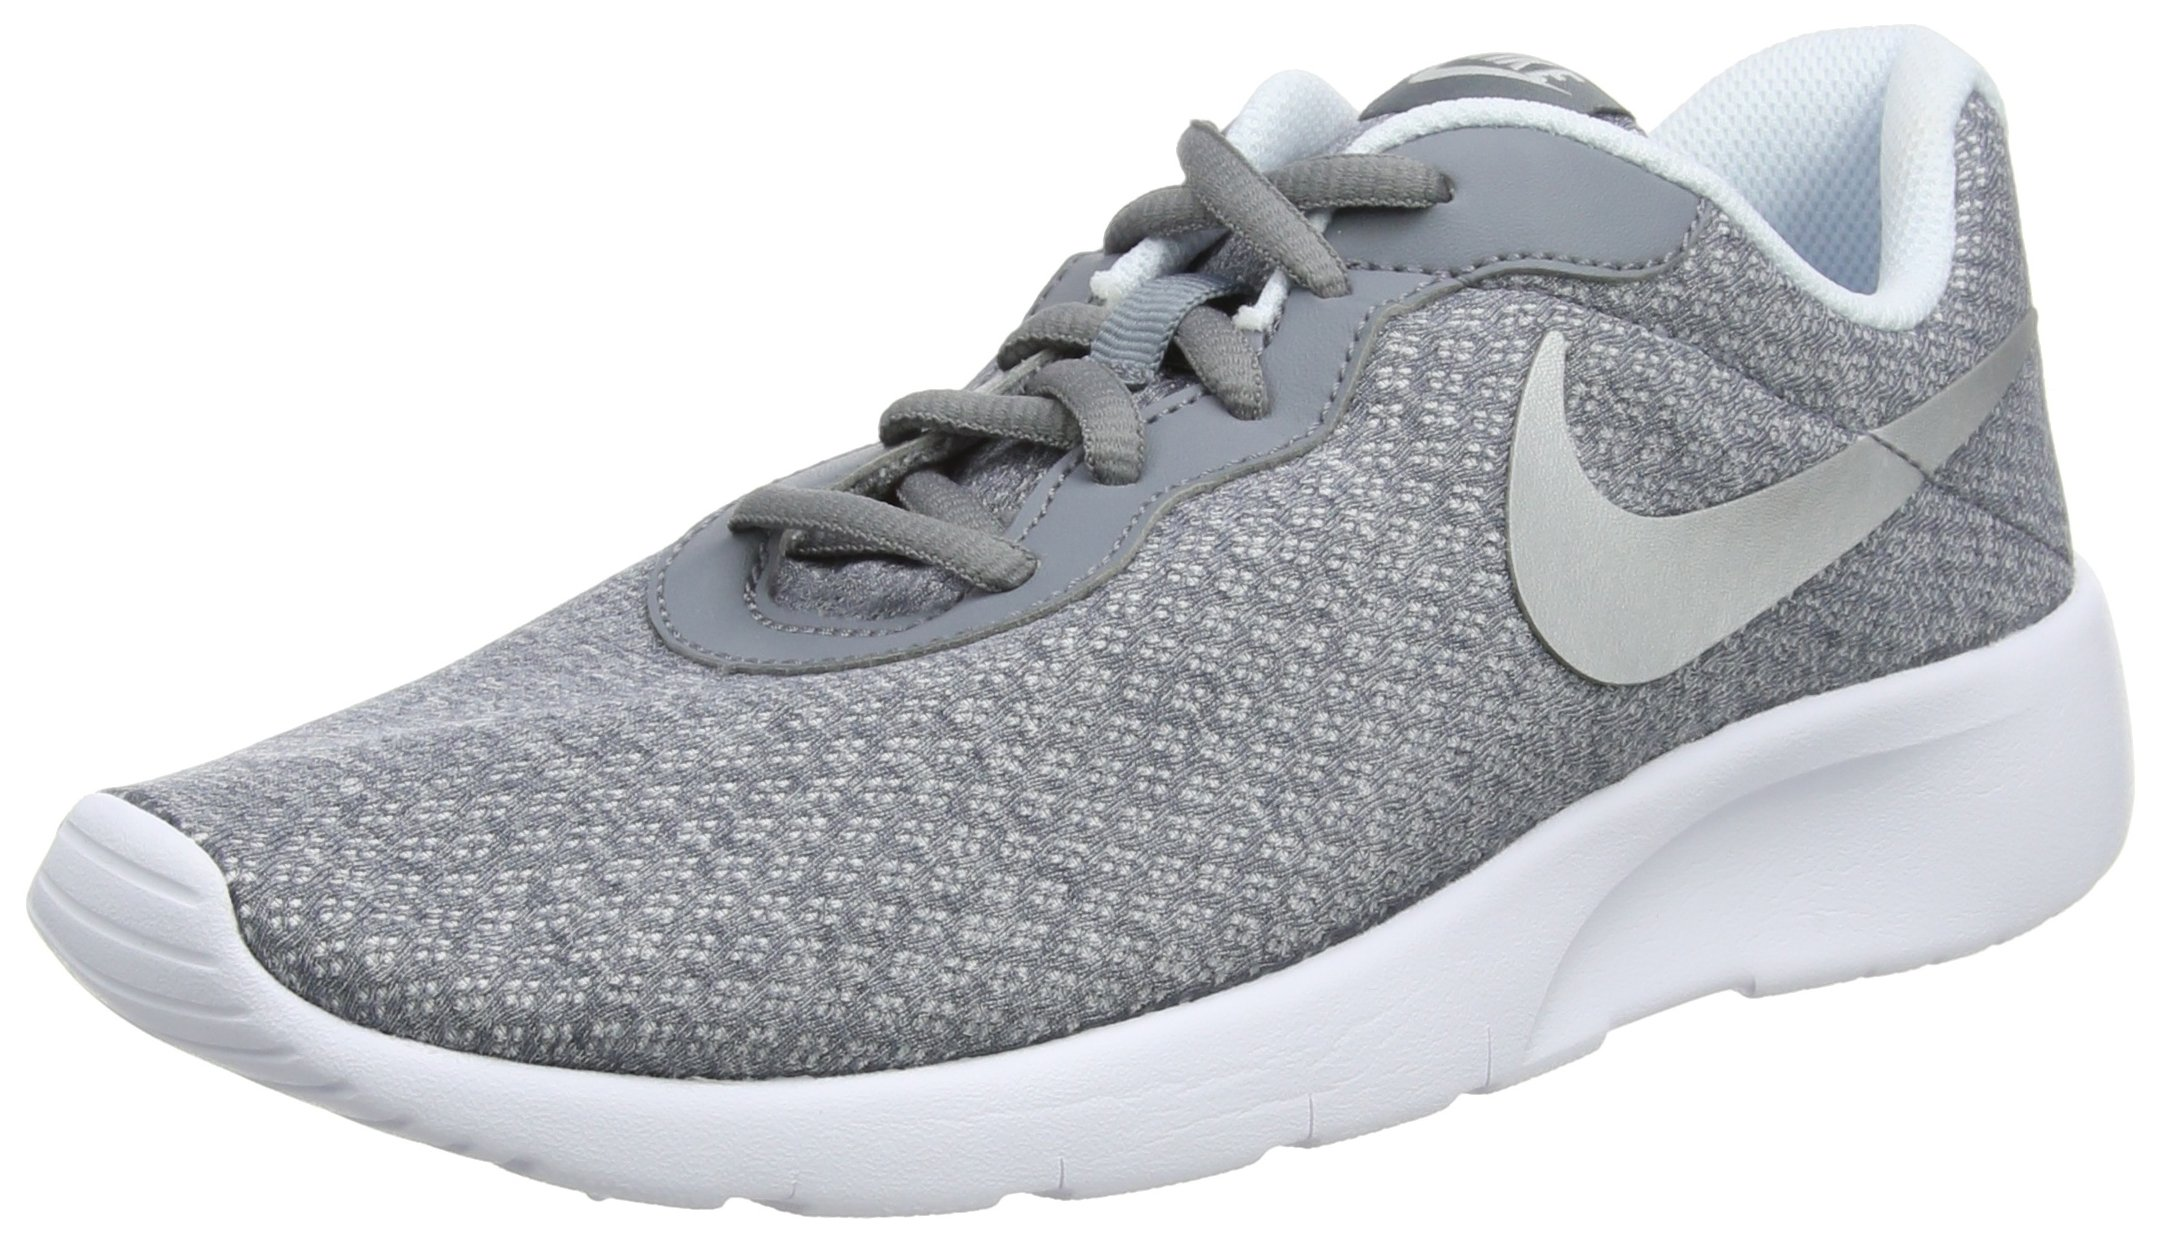 Nike 818384-003: Big Kids' Tanjun Cool Grey/Metallic Silver-blue Tint Sneakers (6 M US Big Kid)